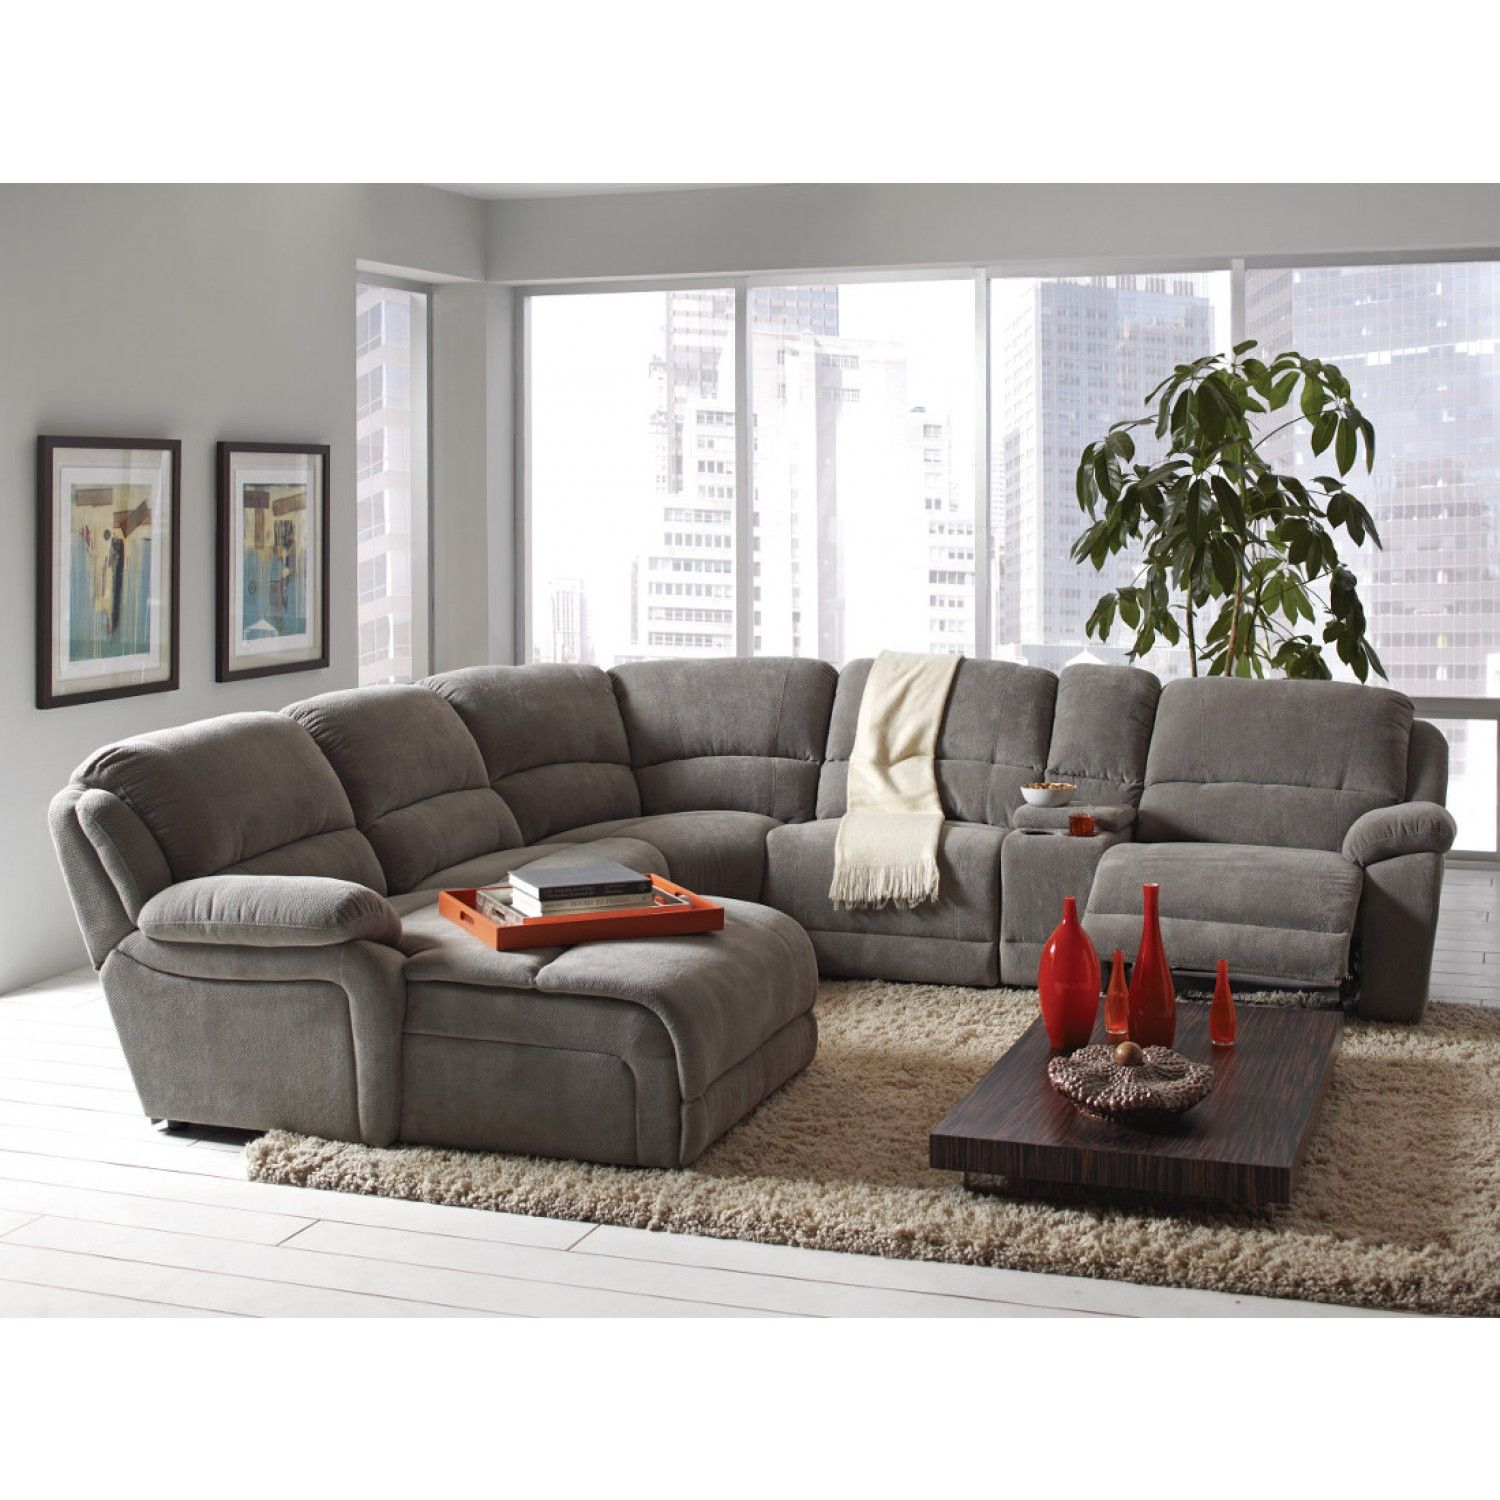 Enjoyable Coaster Mackenzie Silver 6 Piece Reclining Sectional Sofa Pabps2019 Chair Design Images Pabps2019Com